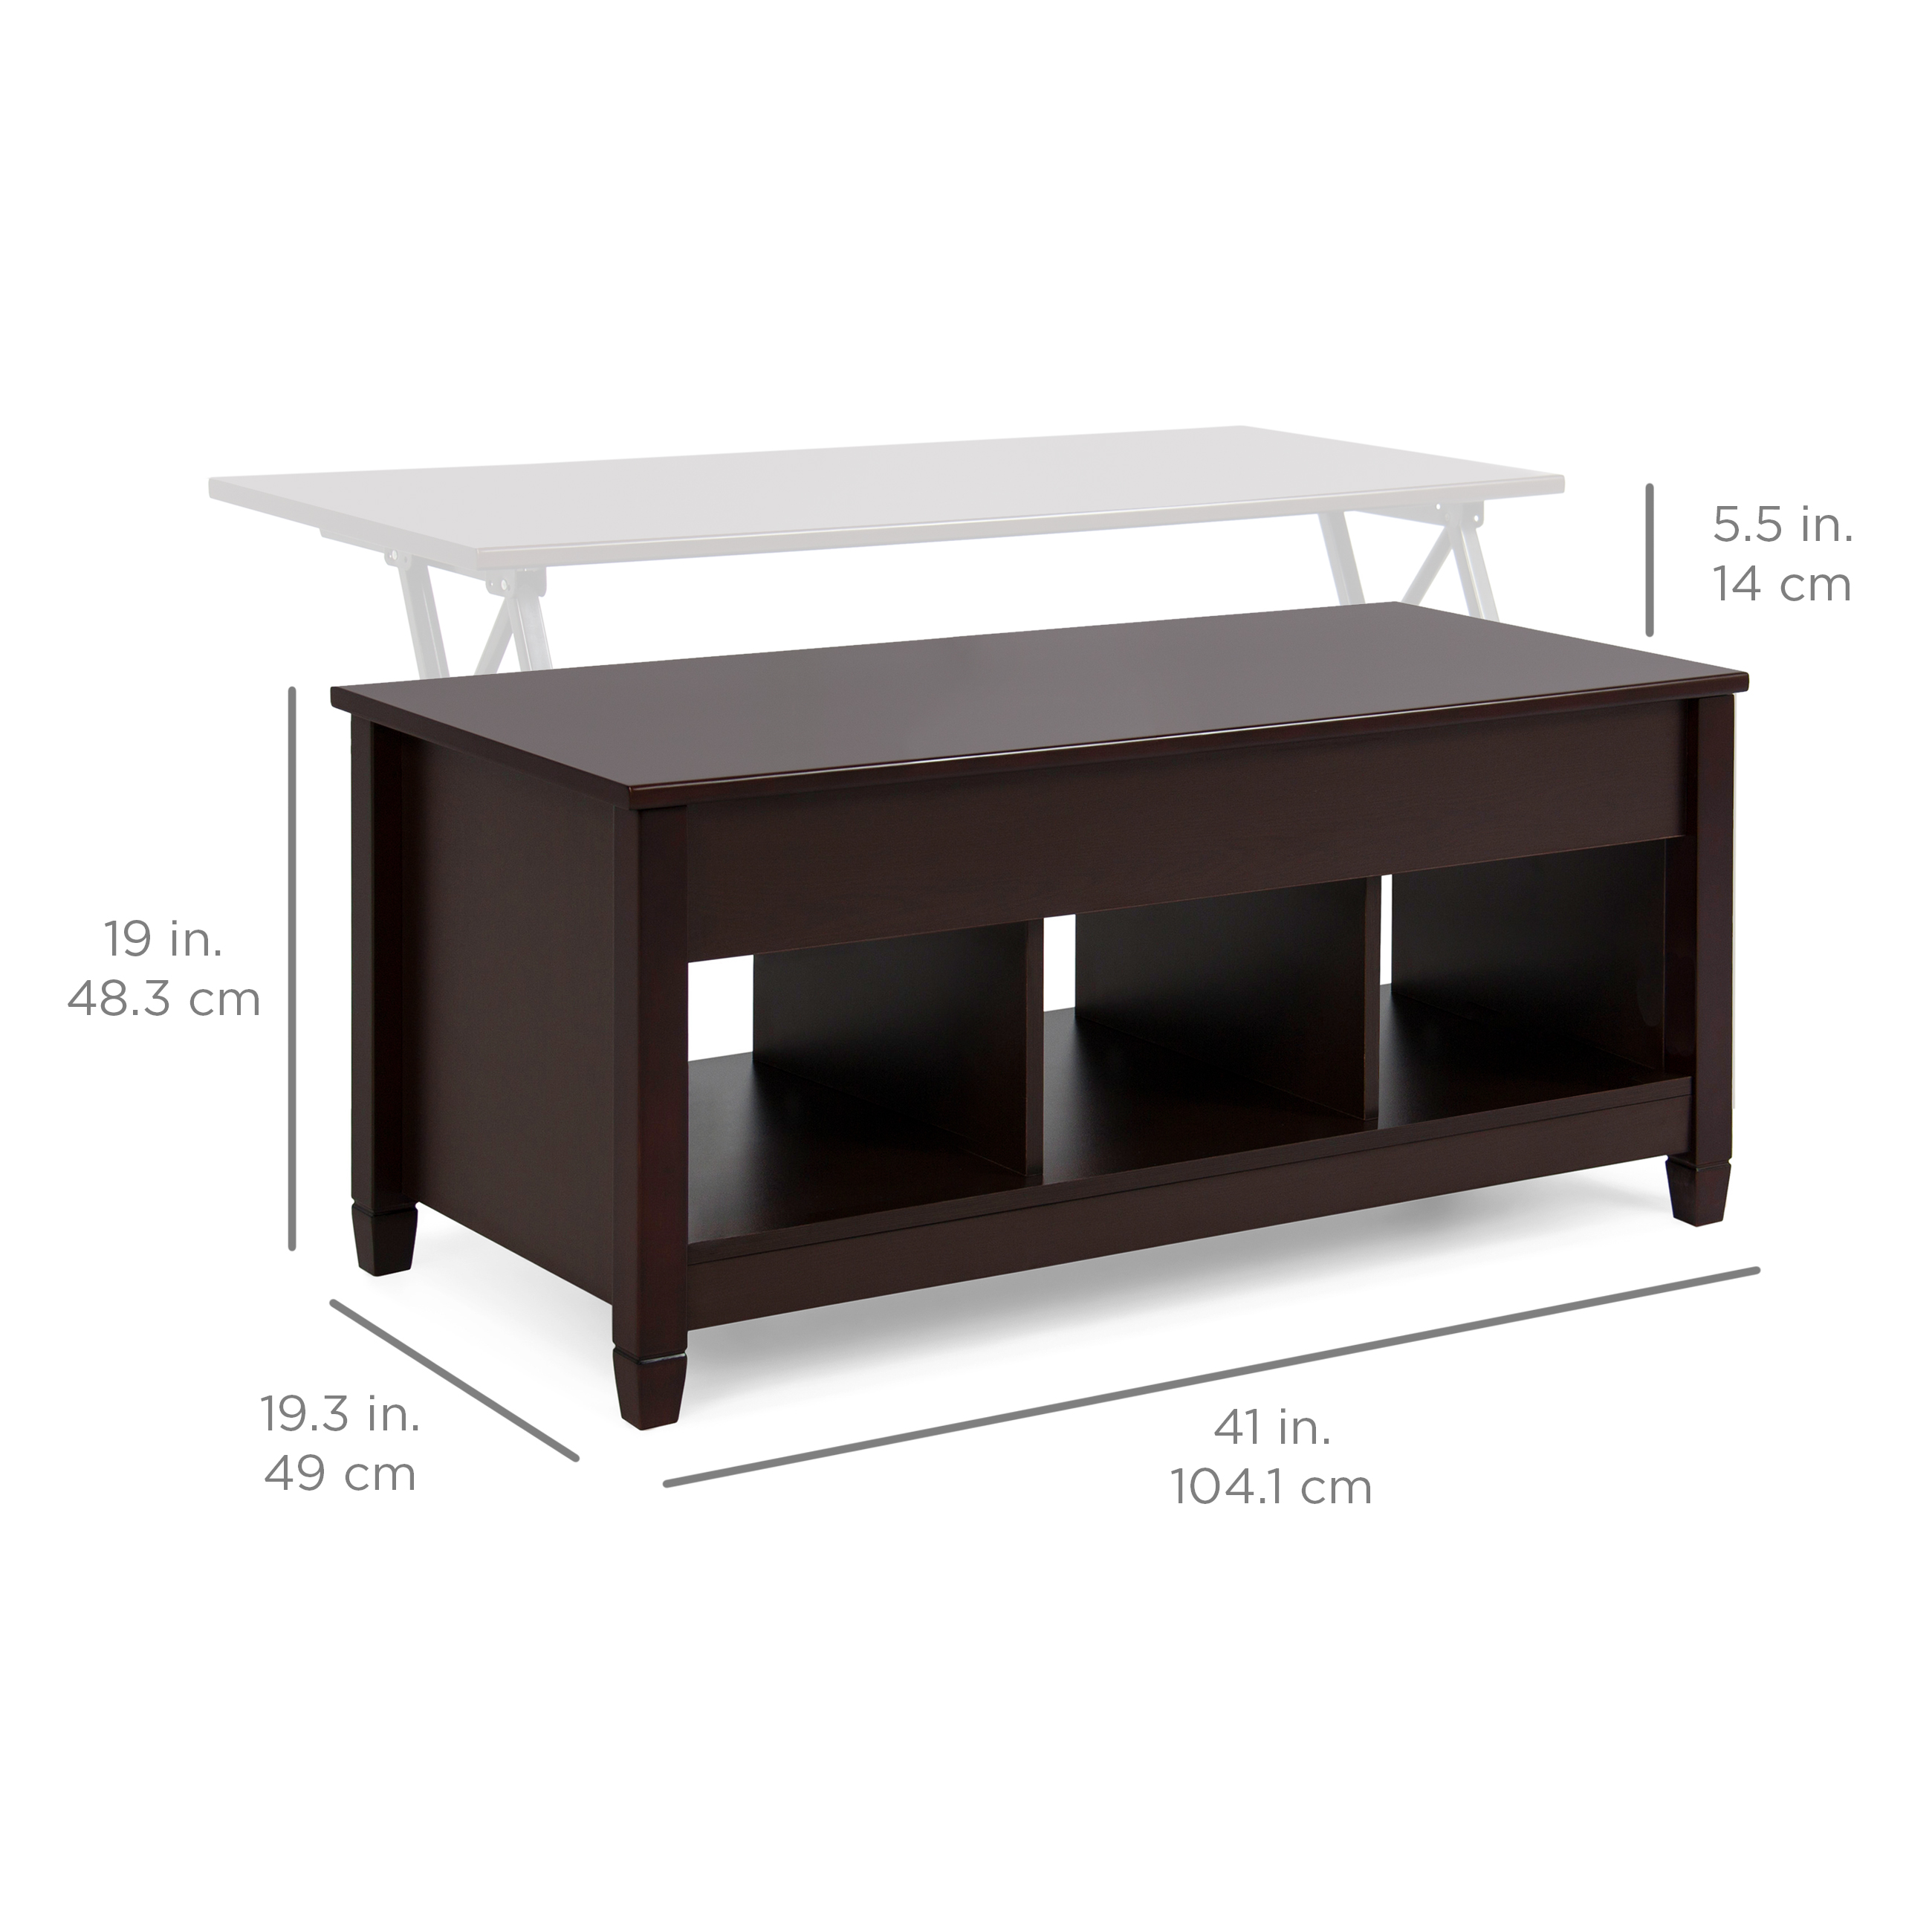 Best Choice Products Home Lift Top Coffee Table Modern Furniture W